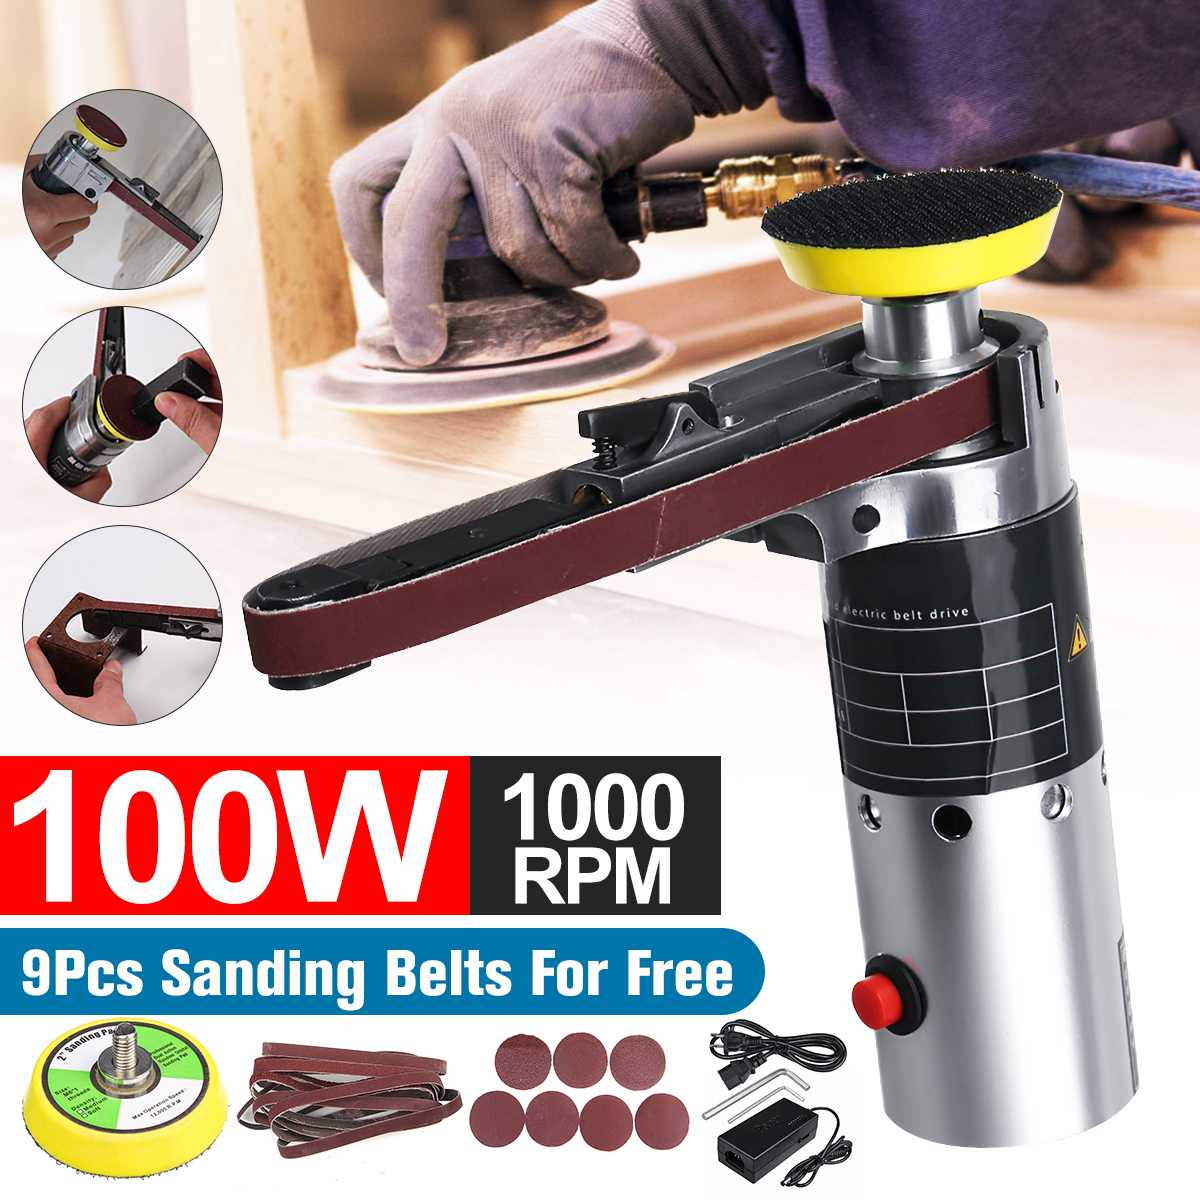 10000rpm Multi-function Mini Grinder DIY Electric Belt Sander Sanding Belt Adapter Grinding Polishing Machine Speed Adjustable